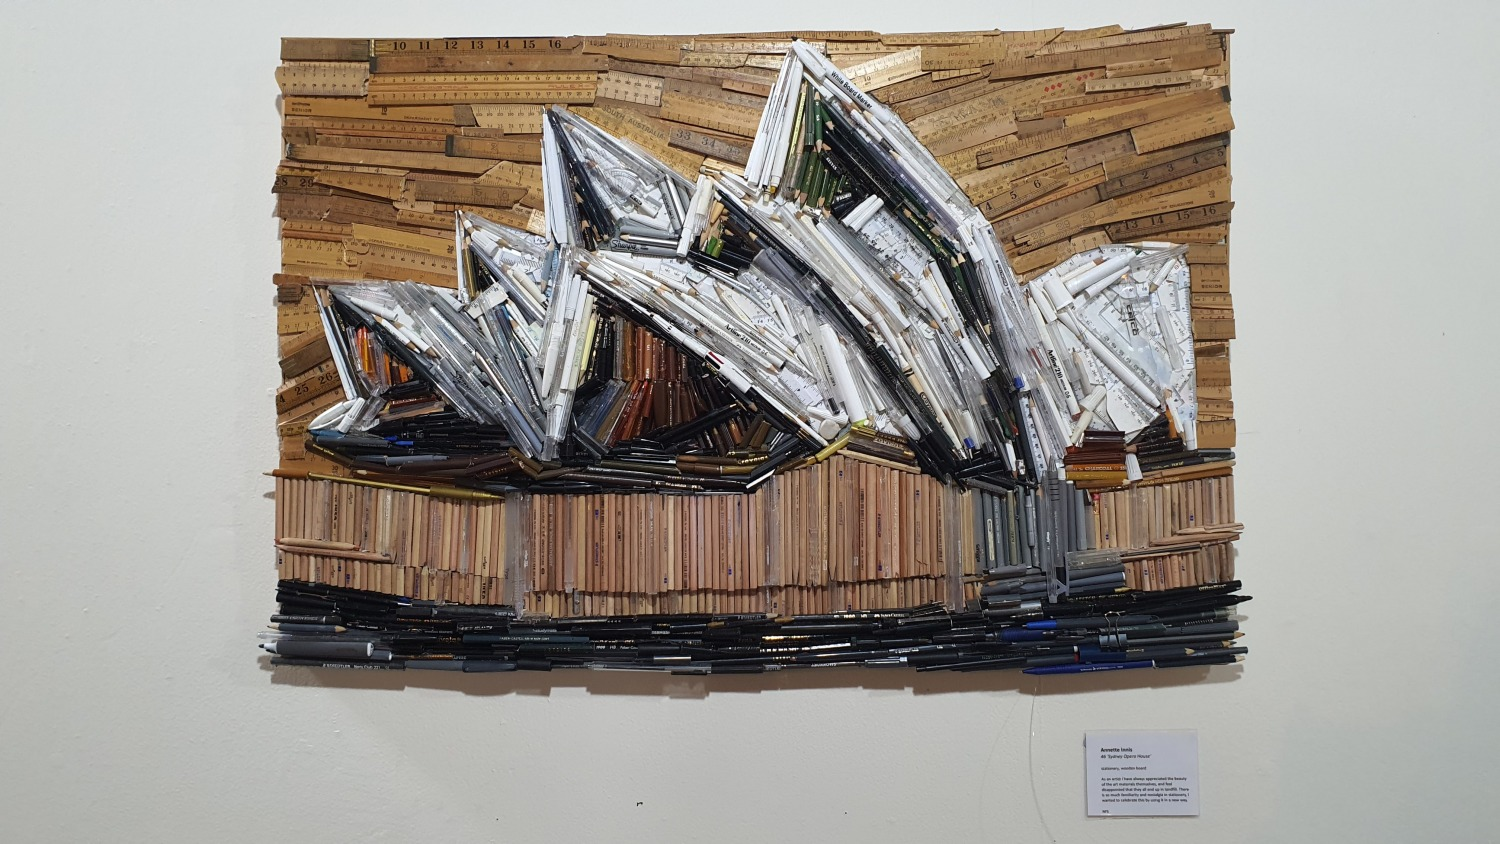 107 Projects Redfern Gallery Sydney Art Out Live (1)